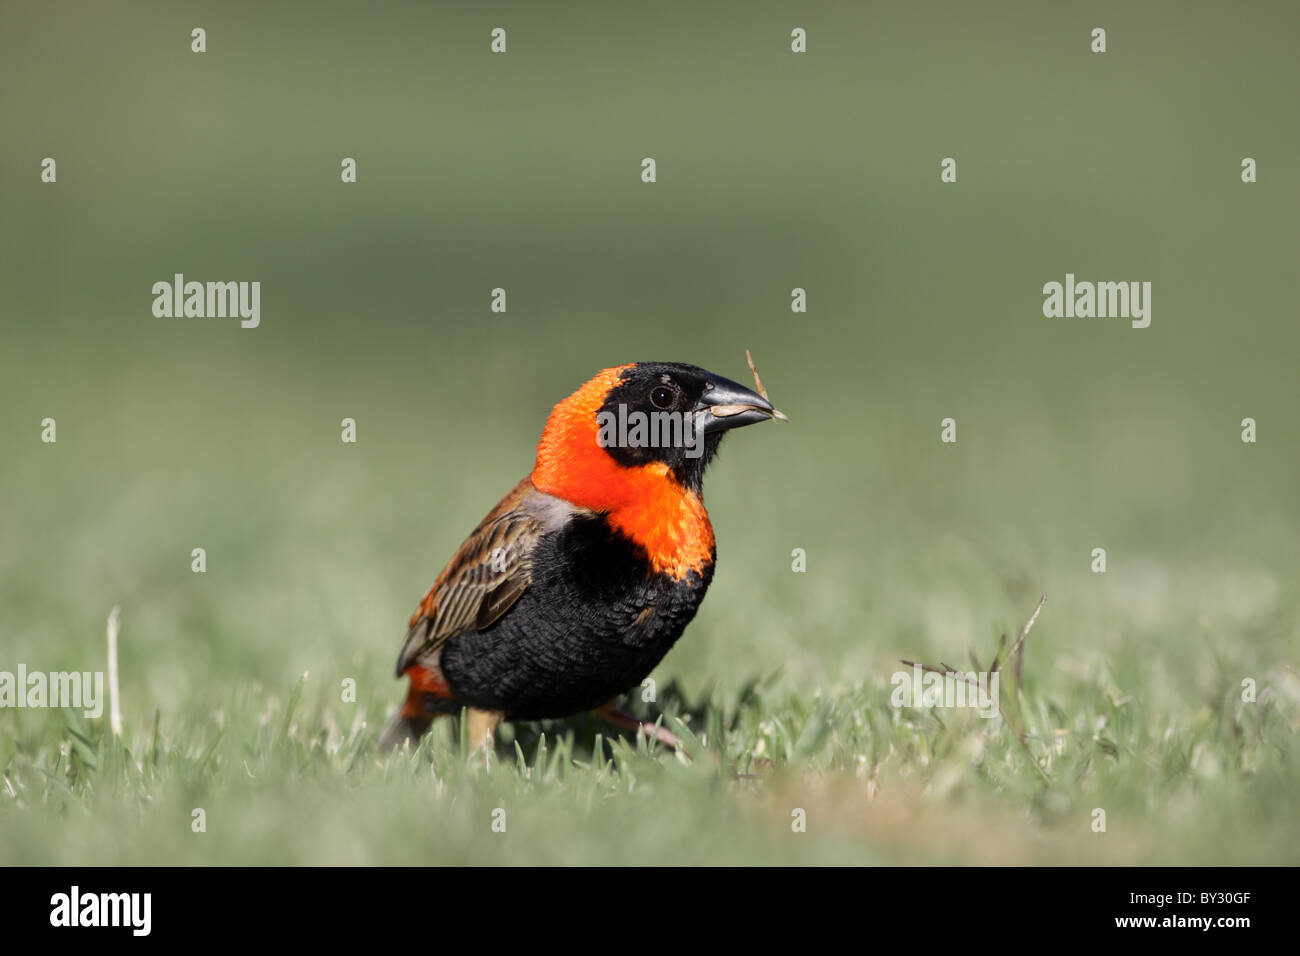 Southern Red Bishop, Euplectes orix, breeding plumage male feeding on seeds at Rietflei Nature Reserve, South Africa - Stock Image